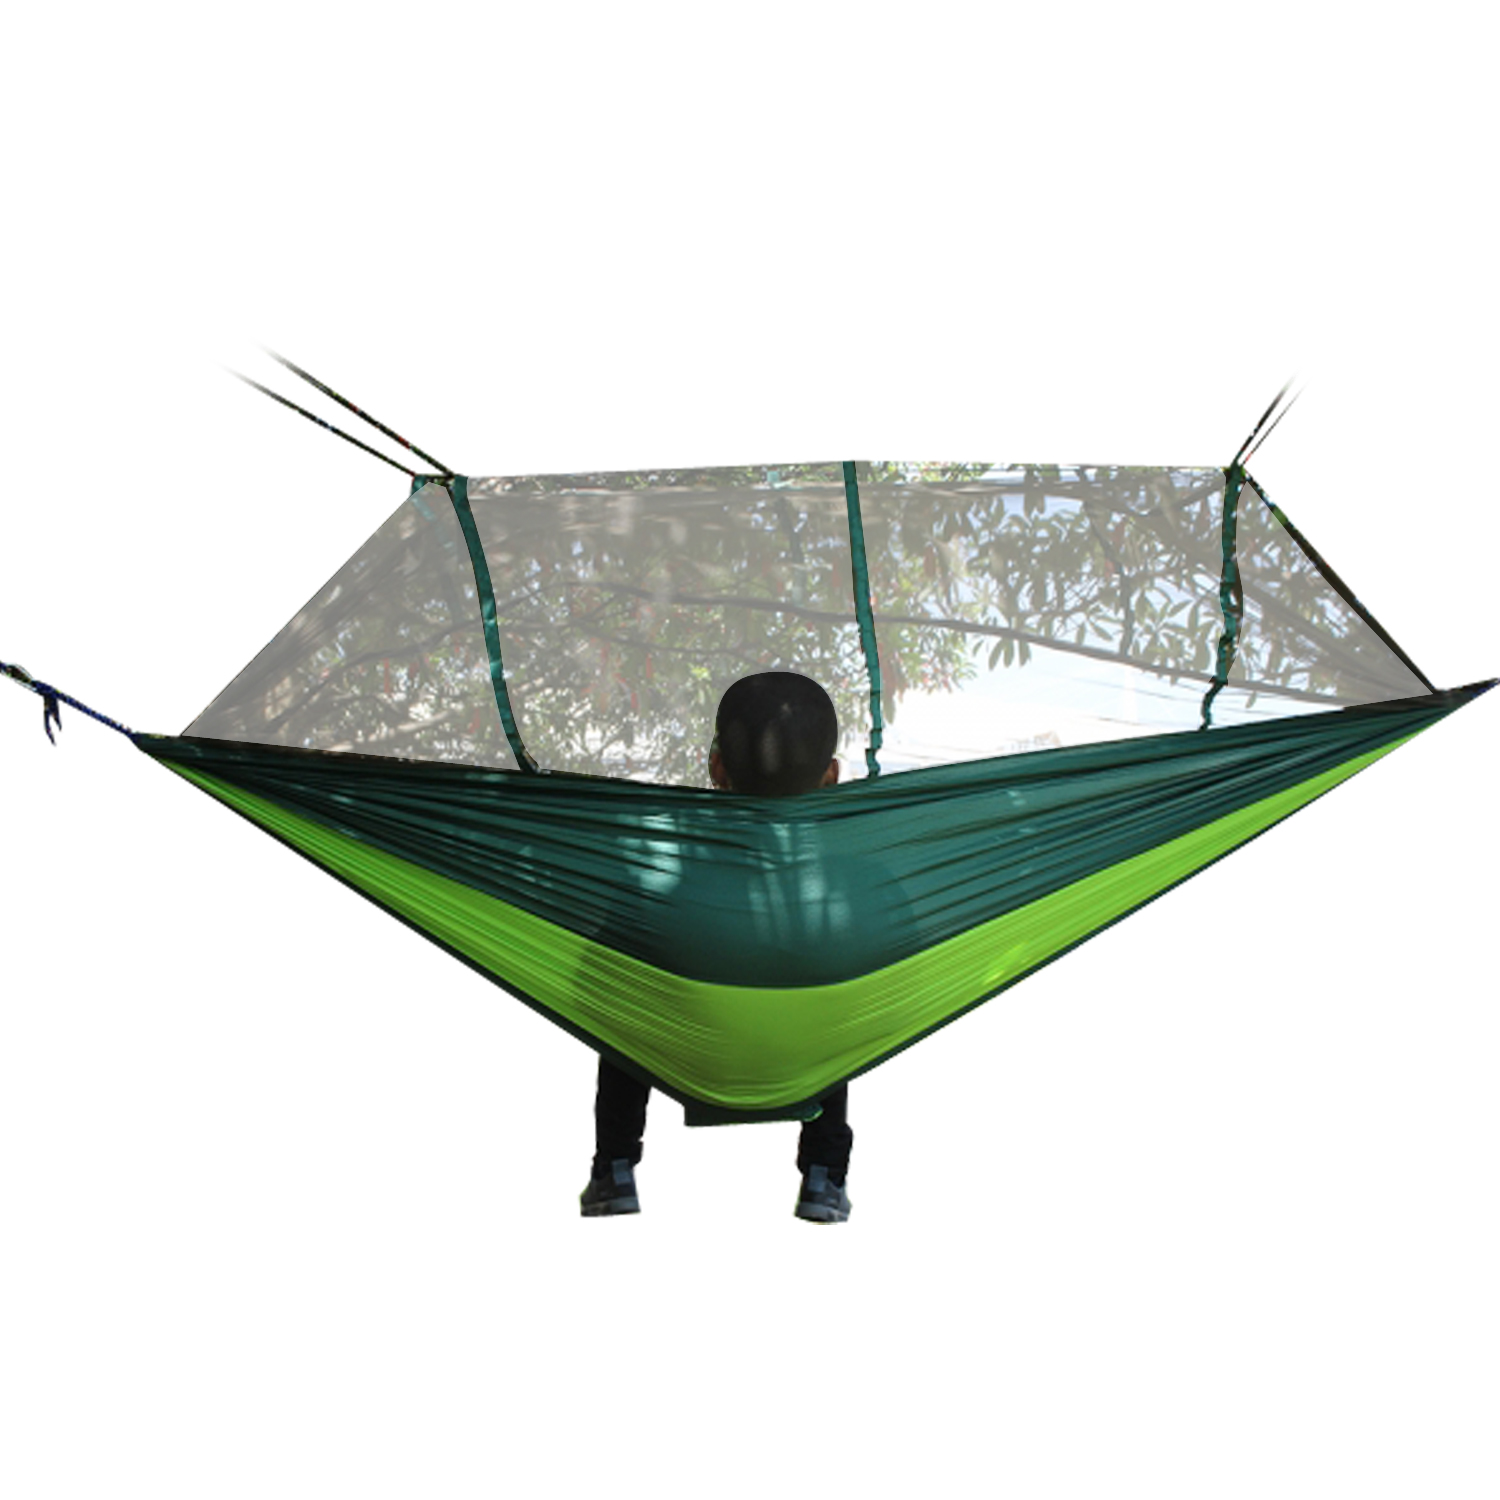 Double Camping Hammock Mosquito Net Parachute Hammock Mat Single Hamack 2 Person Tent Portable Hiking Backpacking Rede De Dormir<br>